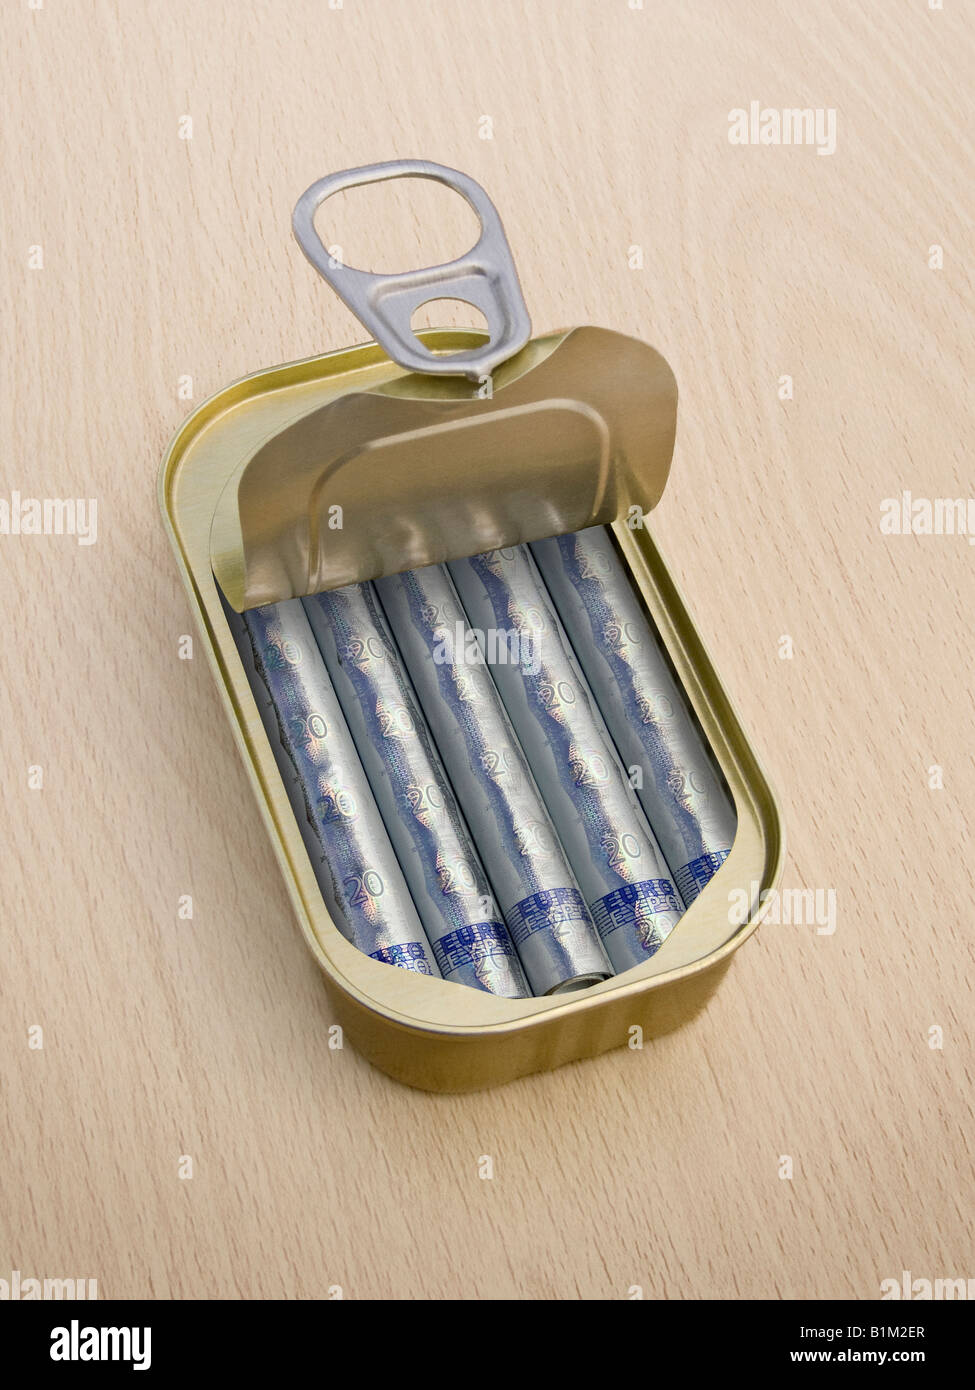 Ring Pull Tin containing rolled 20 Euro notes on wooden surface - Concept - Stock Image